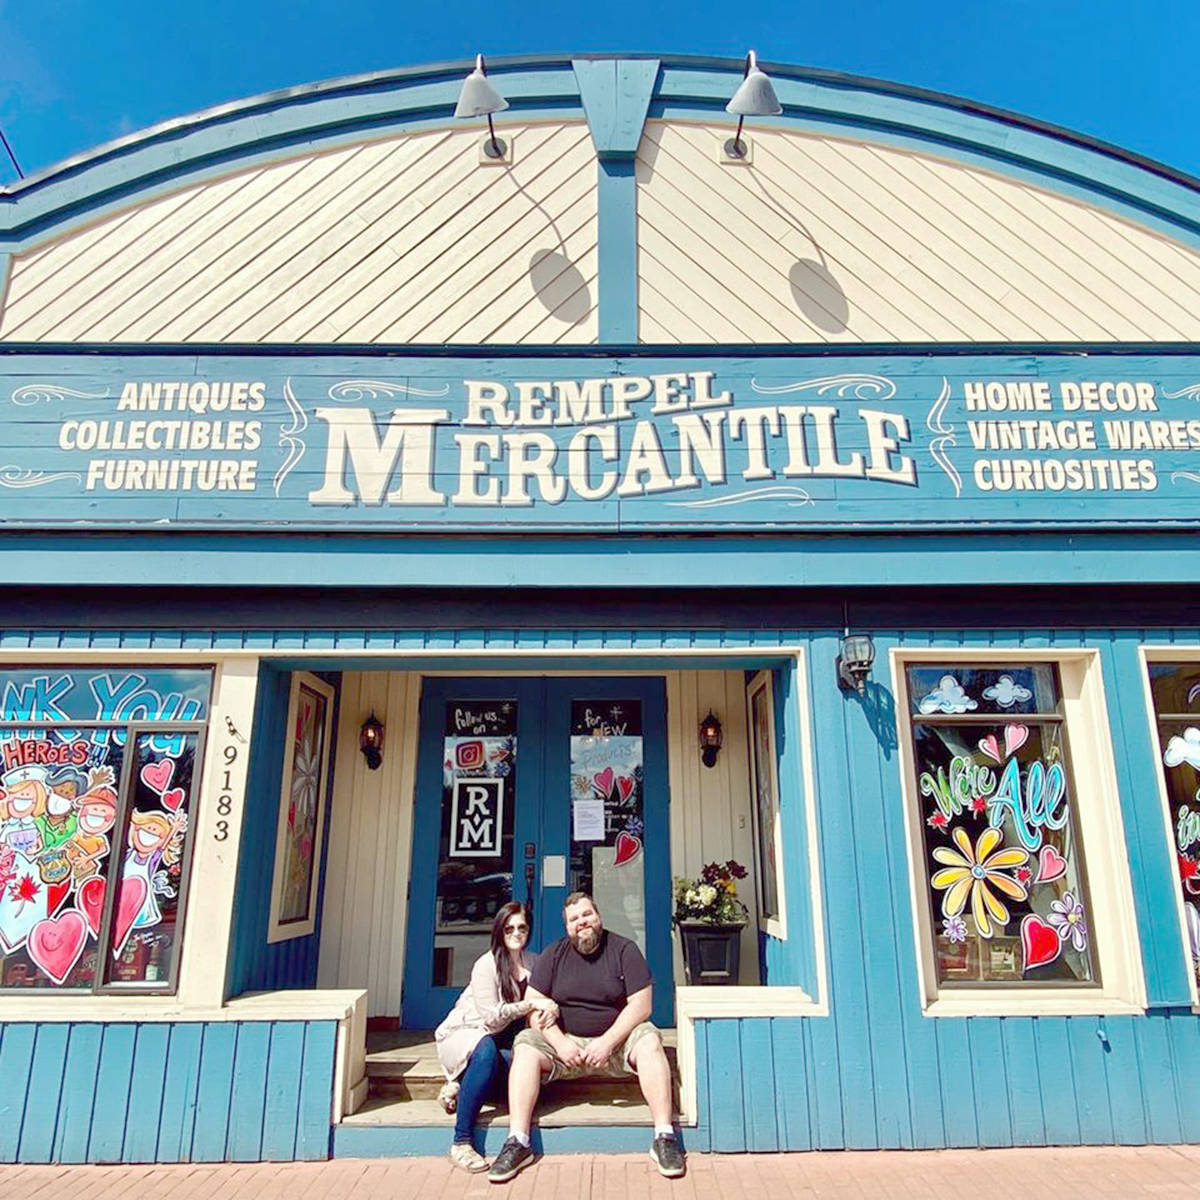 Katie and Jonathan Rempel of Rempel Mercantile started a trend when they decorated their Fort Langley store with encouraging messages (Facebook image)